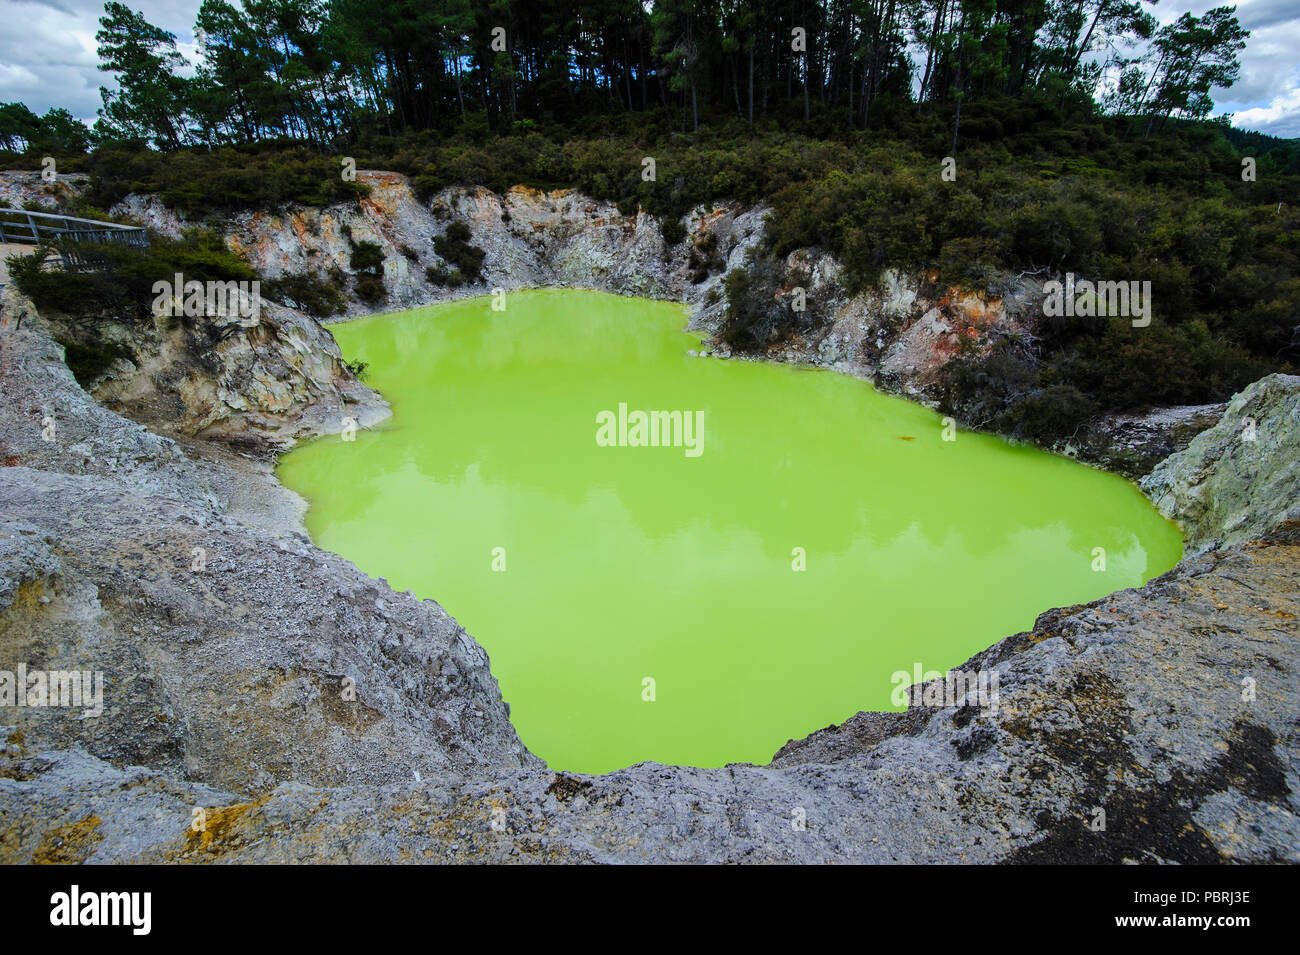 Very green acid crater in the Wai-O-Tapu Volcanic Wonderland, North Island, New Zealand - Stock Image